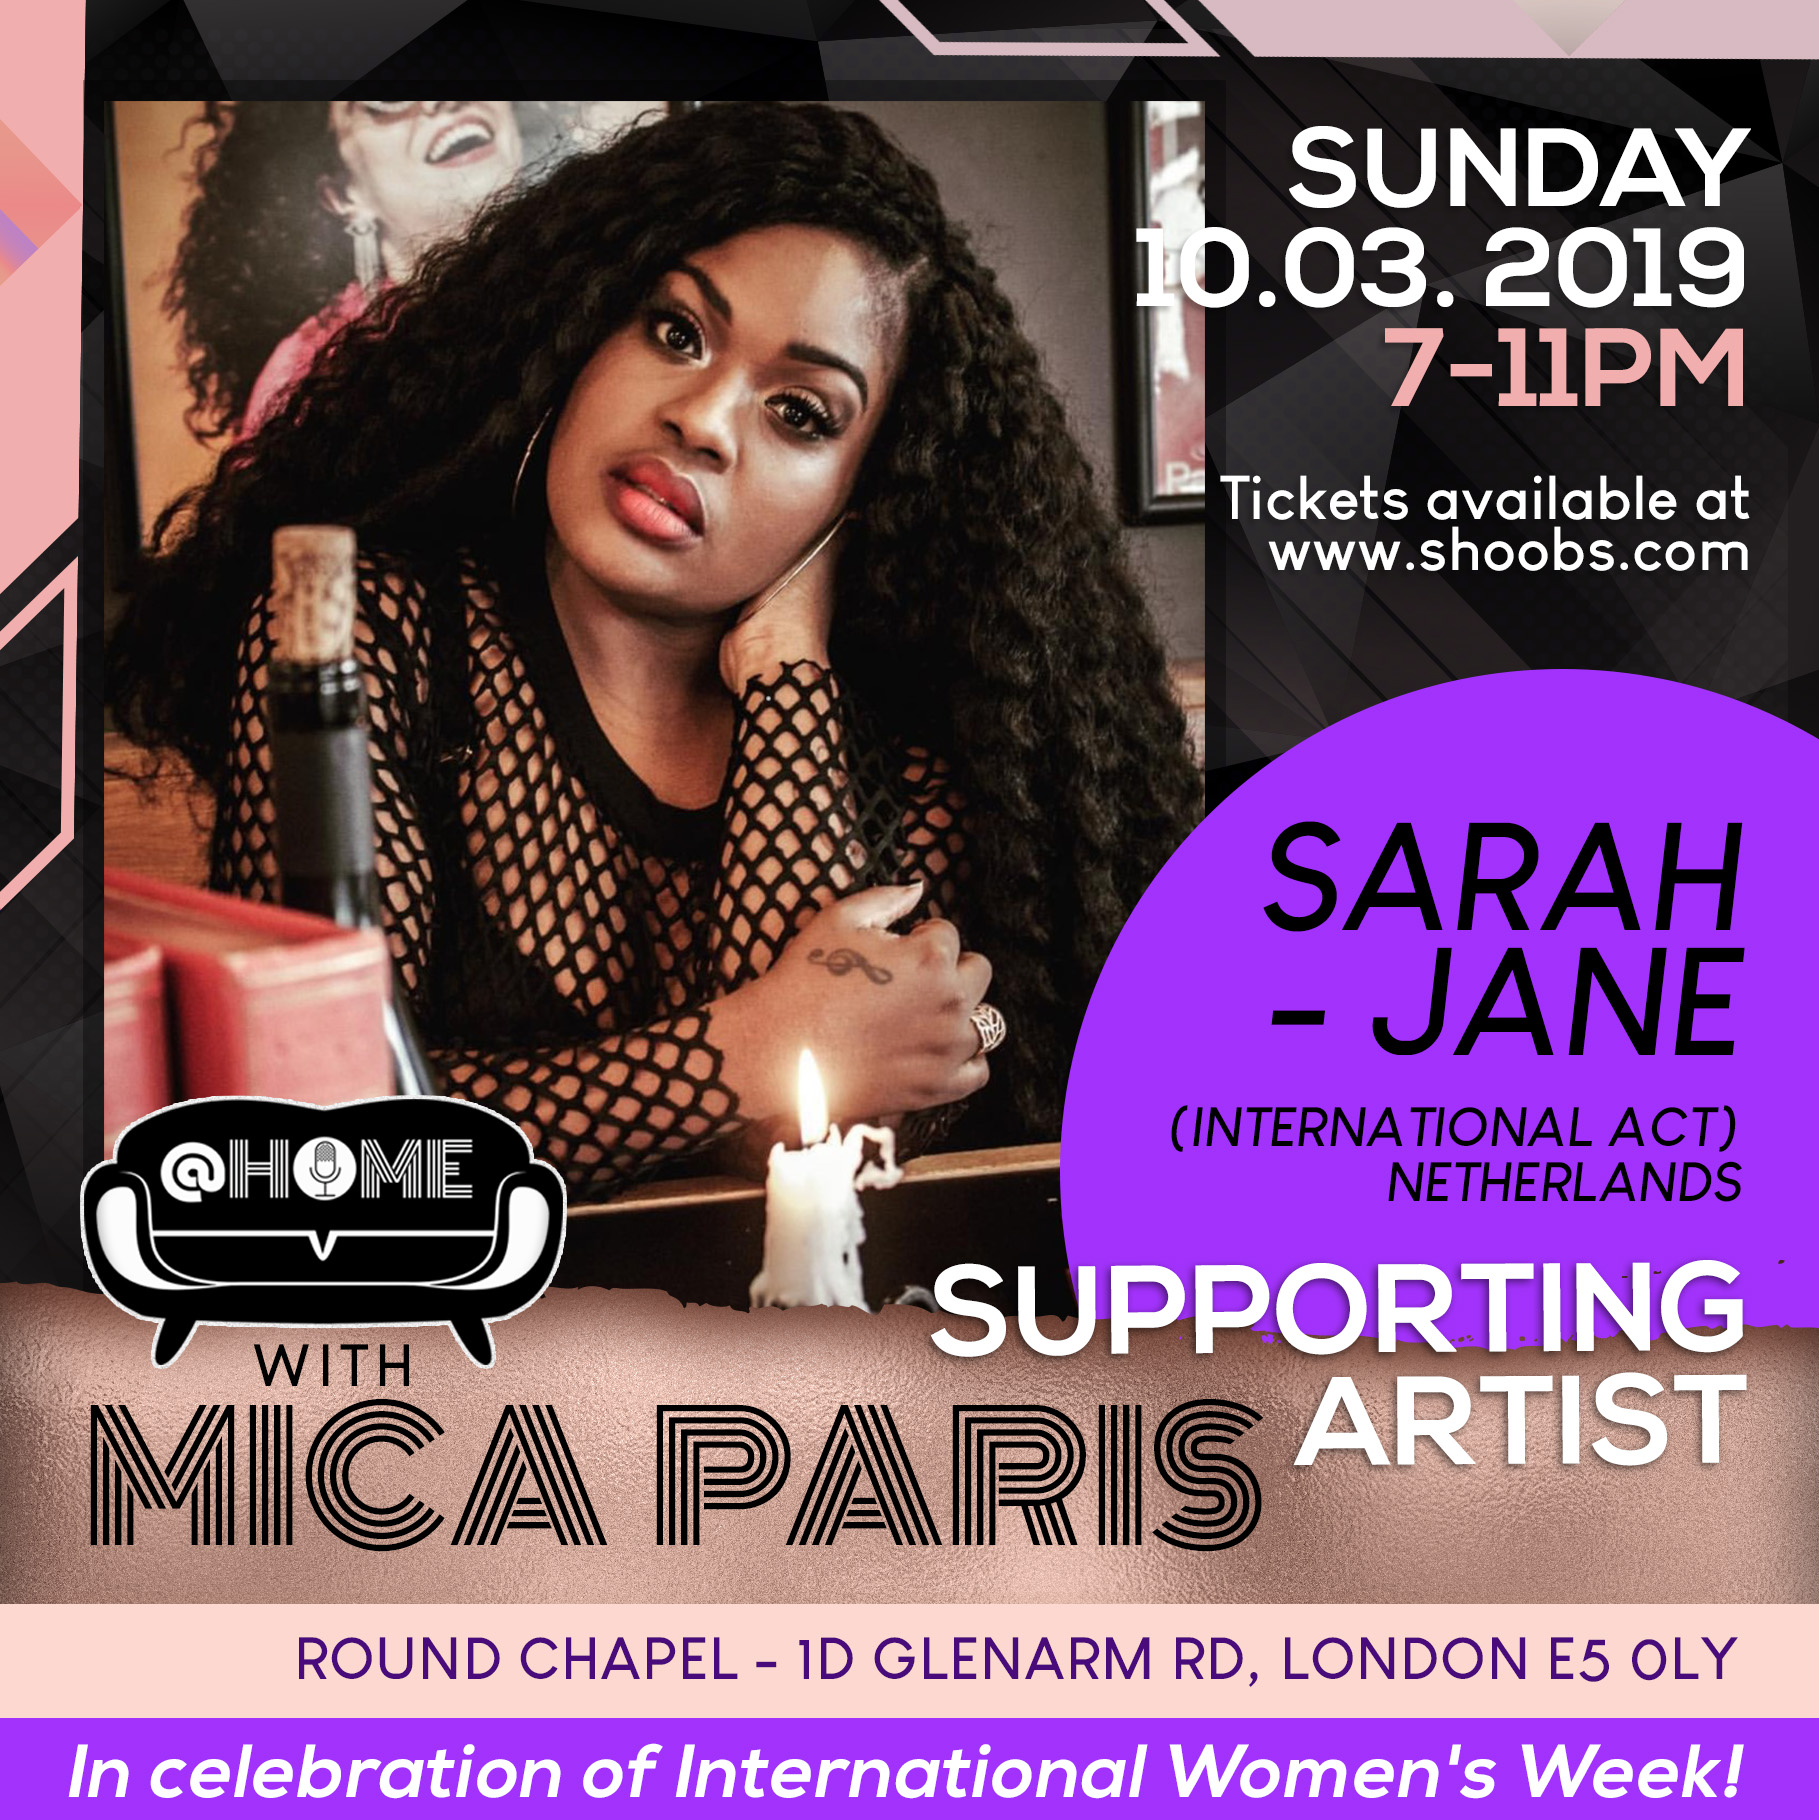 MICA PARIS Supporting Artists Sarah Jane.jpg